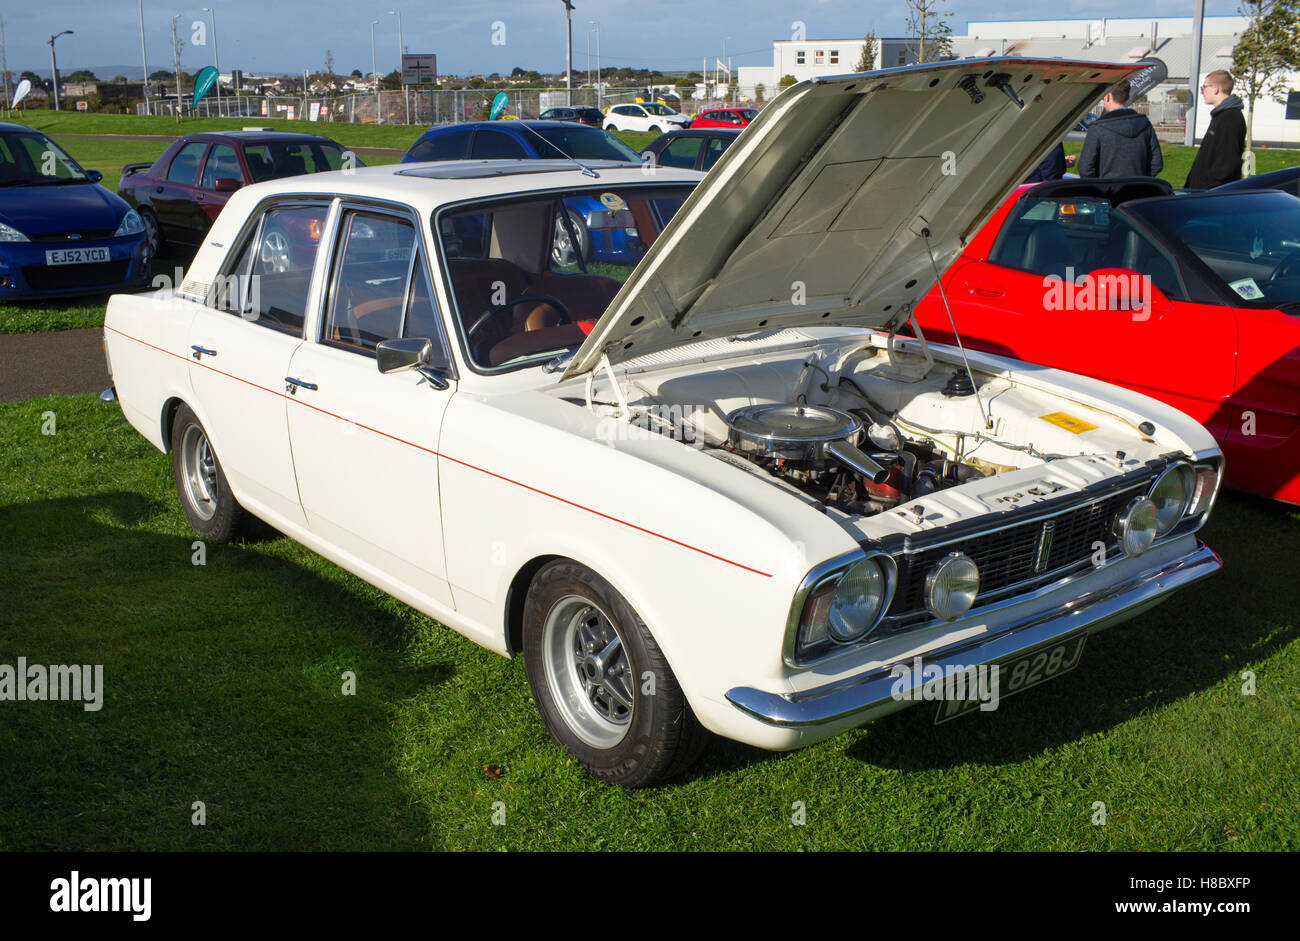 classic ford cortina stock photos classic ford cortina. Black Bedroom Furniture Sets. Home Design Ideas